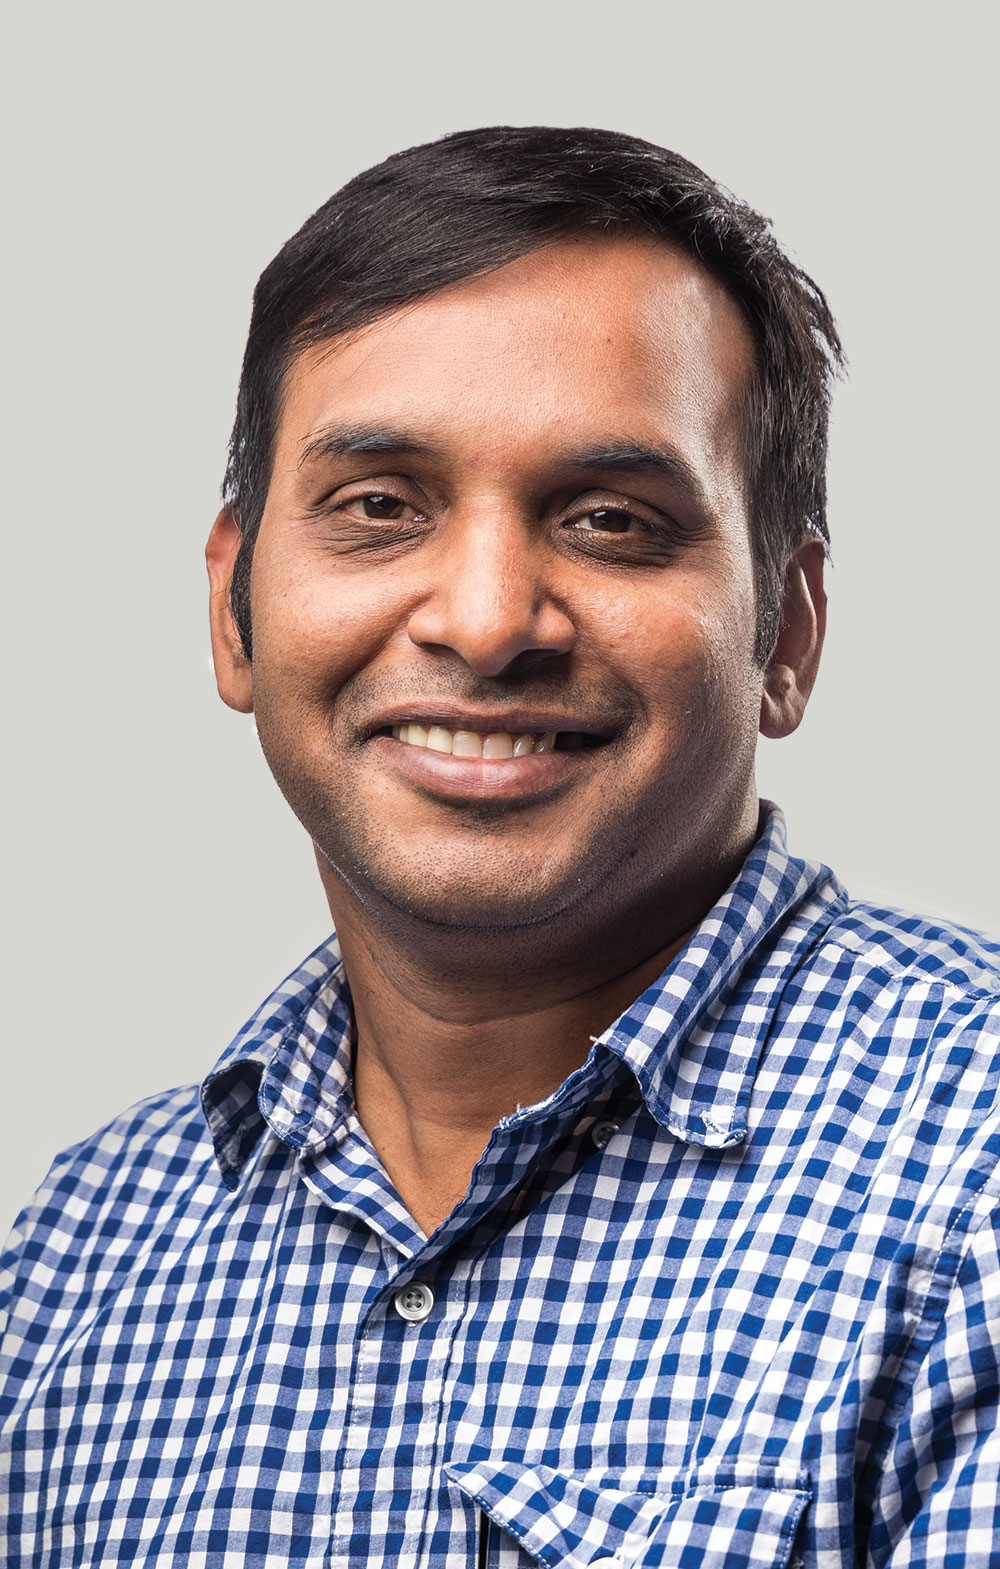 Raj Nandety, Ph.D., Postdoctoral Fellow in the Molecular Plant Microbe Laboratory